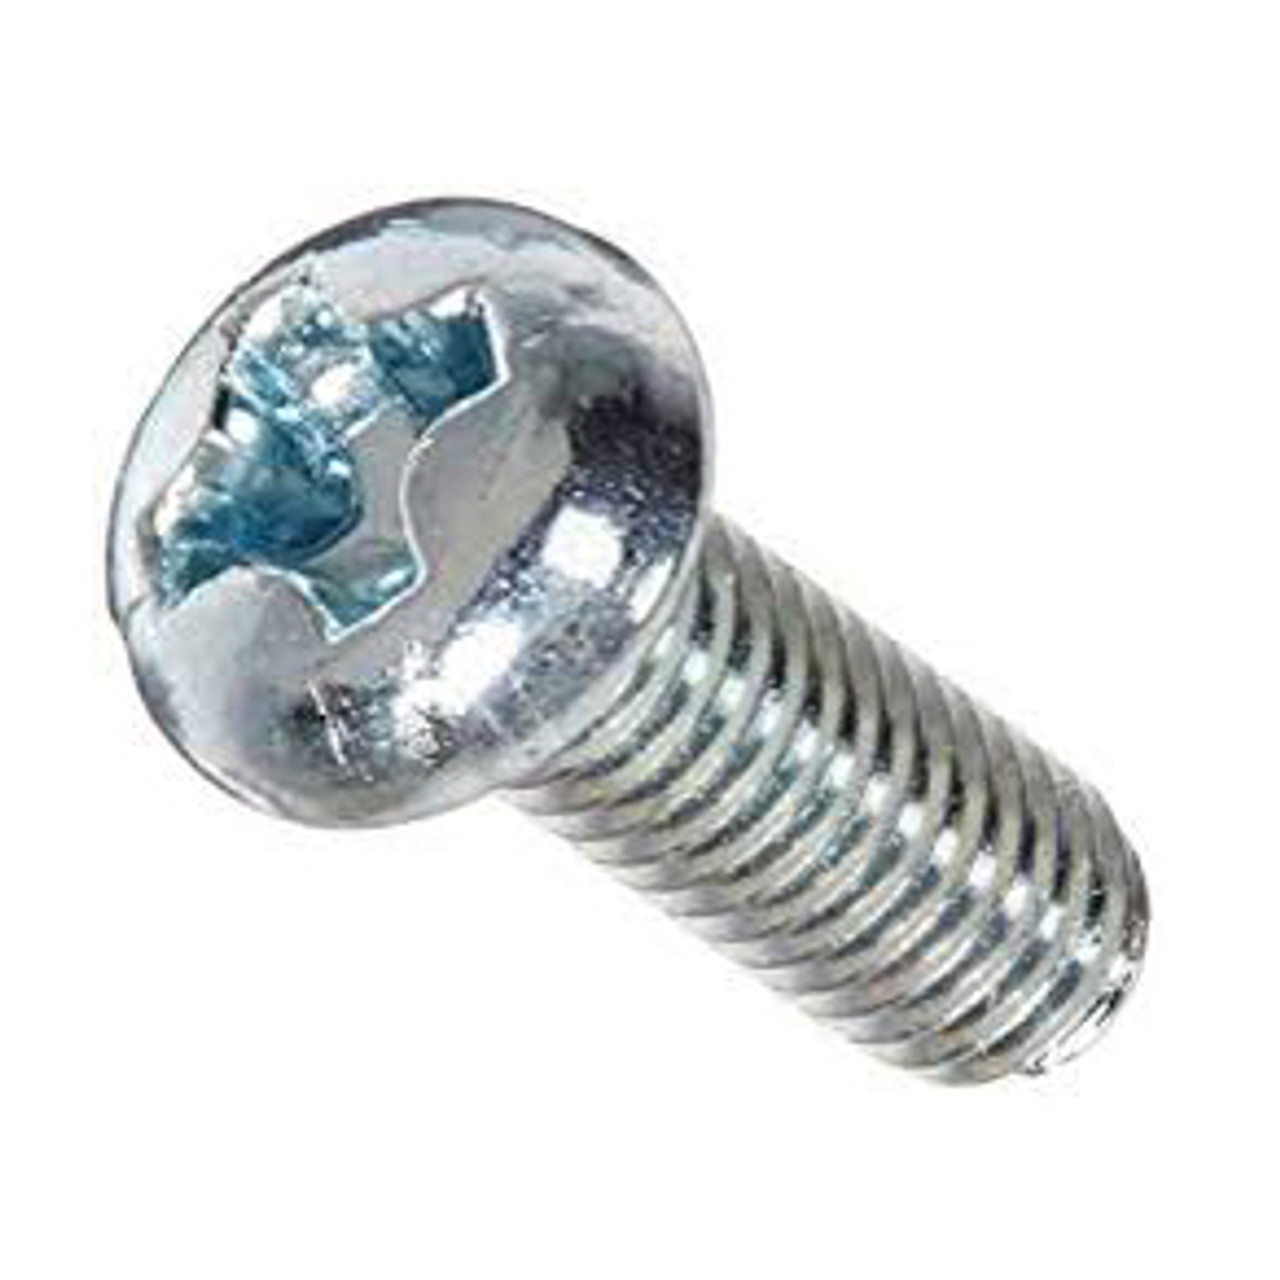 Stainless Steel Metric Cheese Head Machine Screws M5 x 0.8 x 20mm 10 Pack